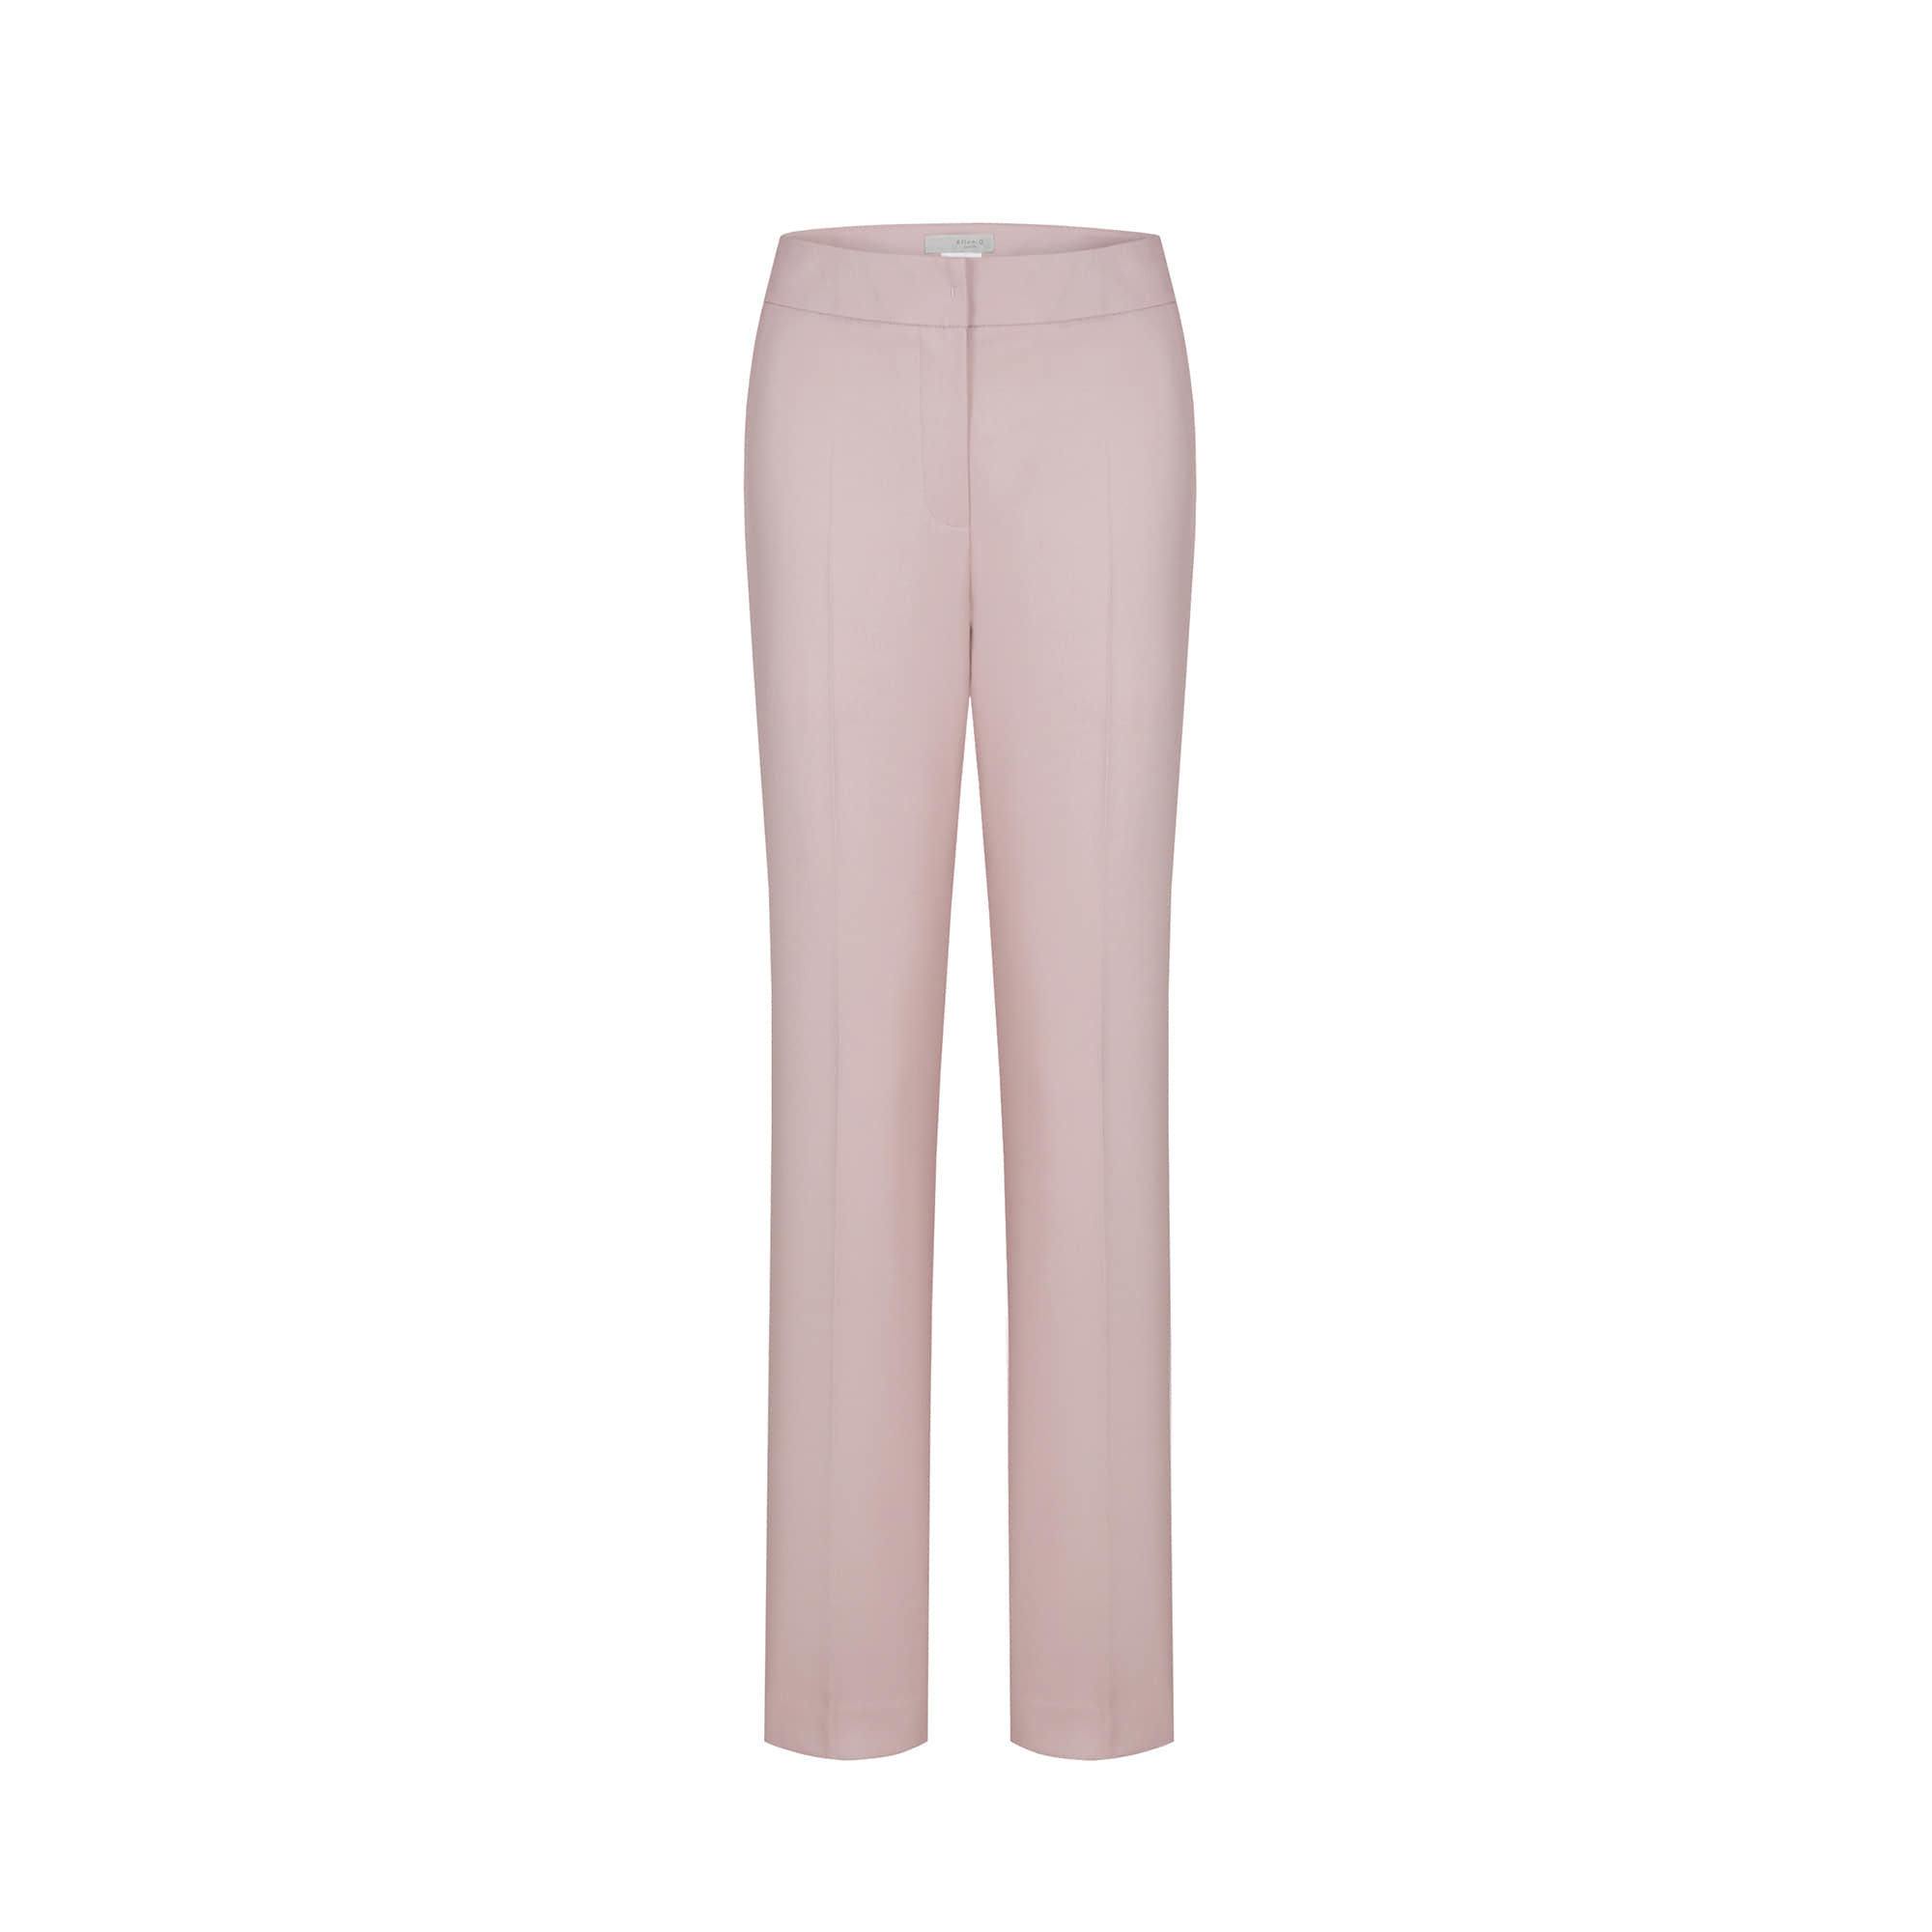 Signature Suit Pants (Pink)